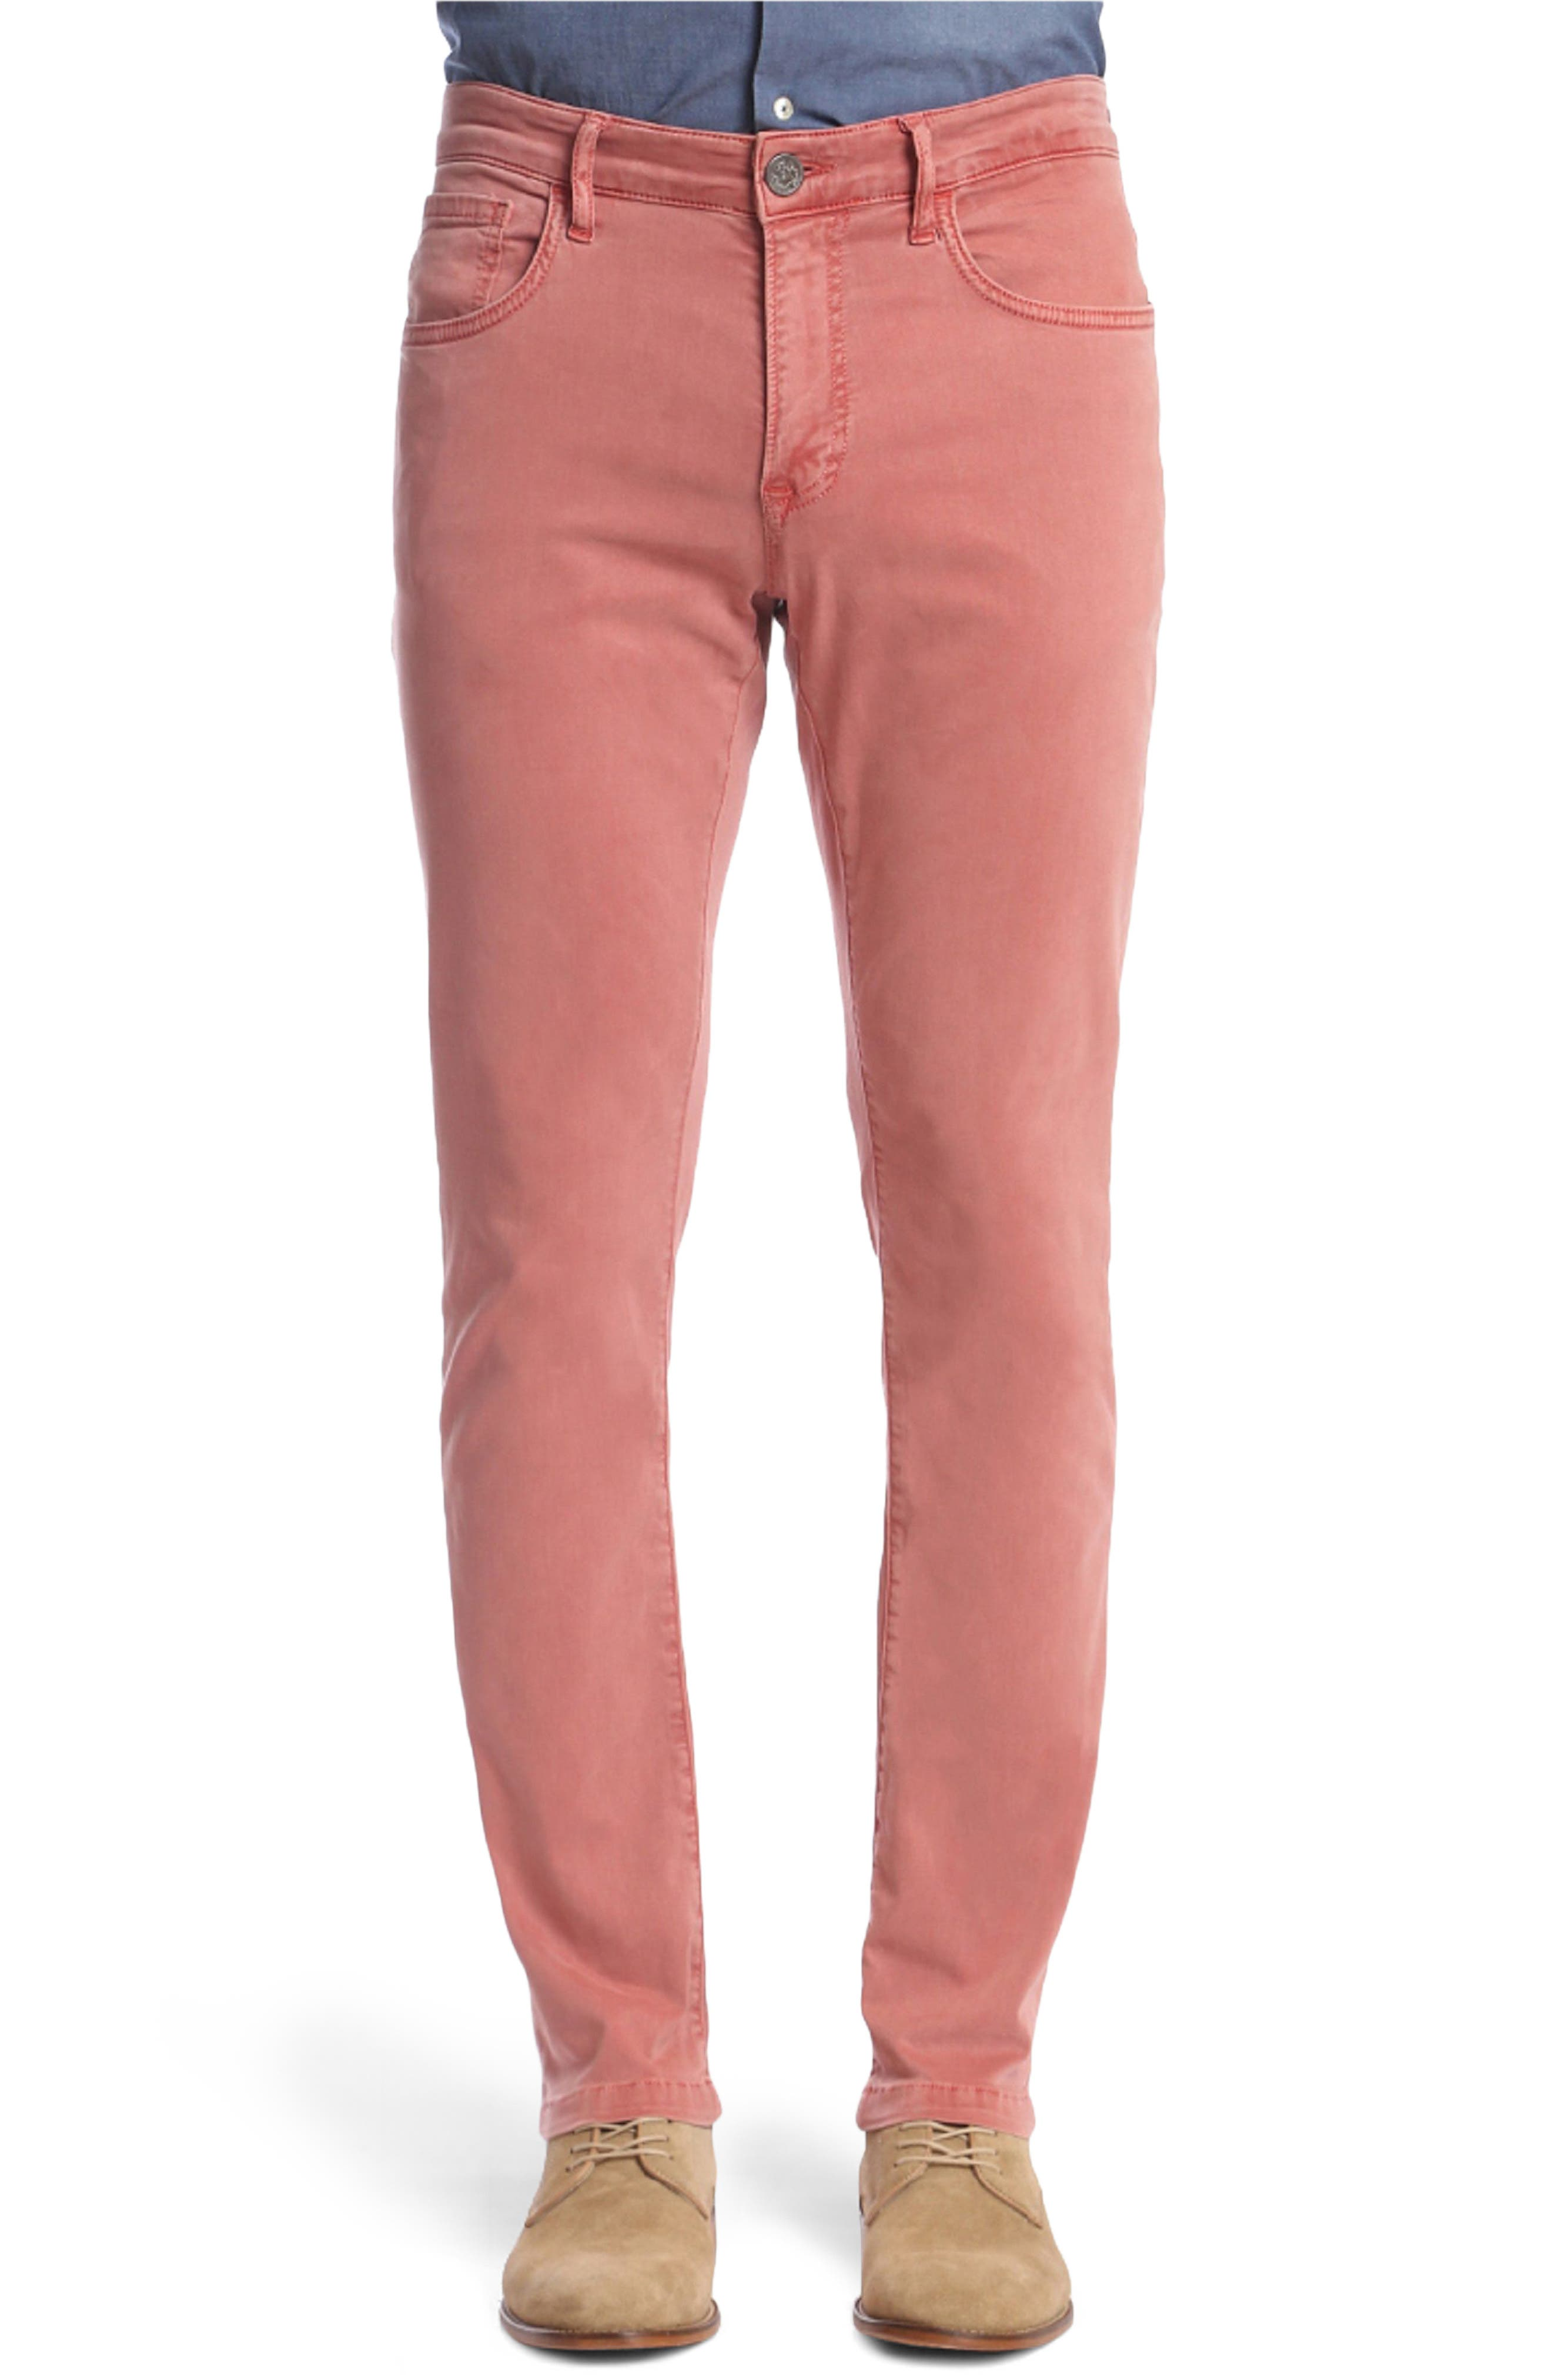 Charisma Relaxed Fit Twill Pants,                         Main,                         color, Brick Twill